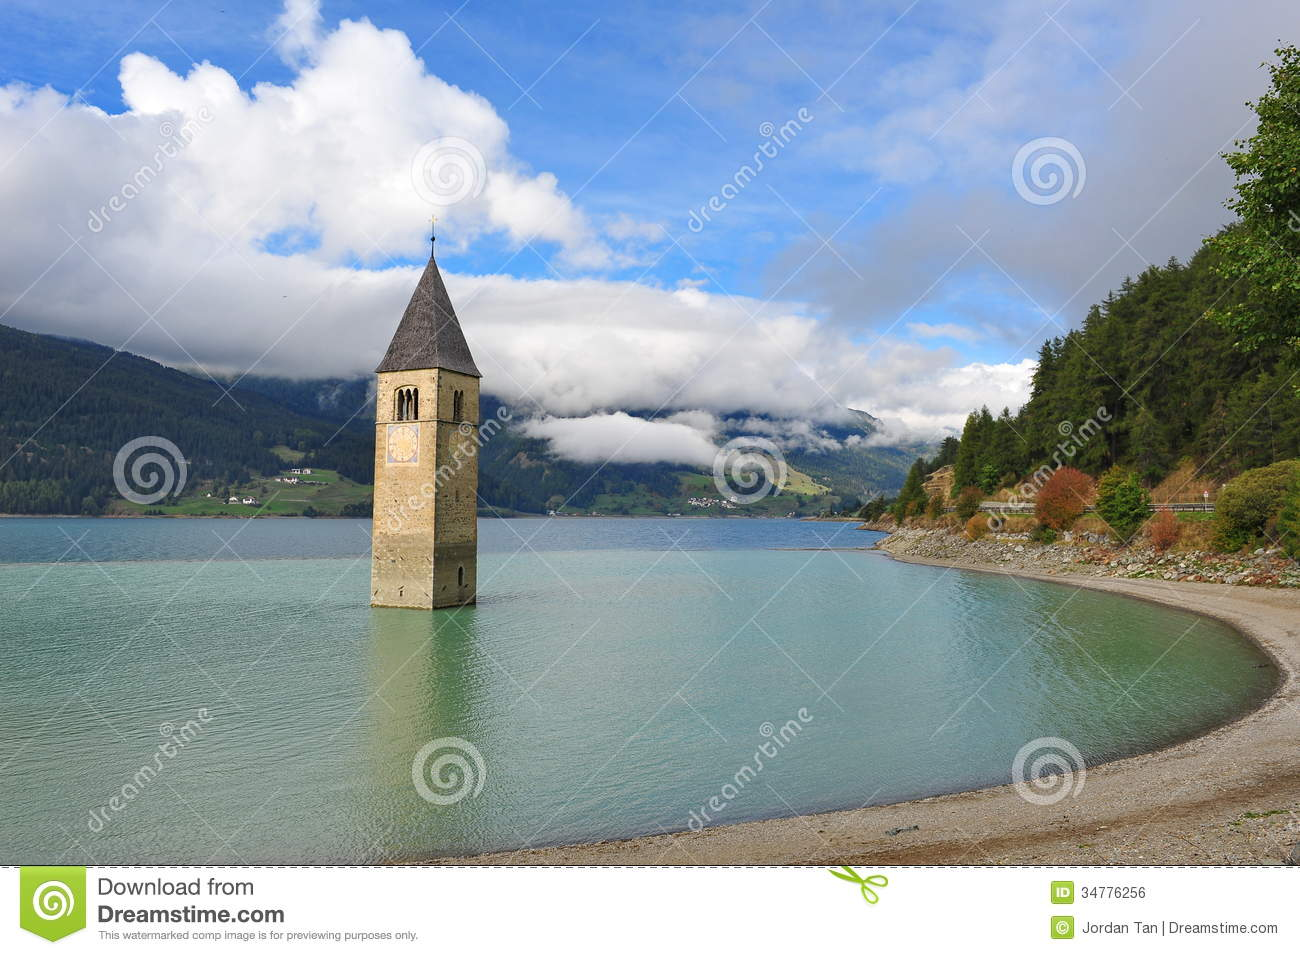 Submerged Church Tower, Graun Im Vinschgau, Italy Royalty Free.